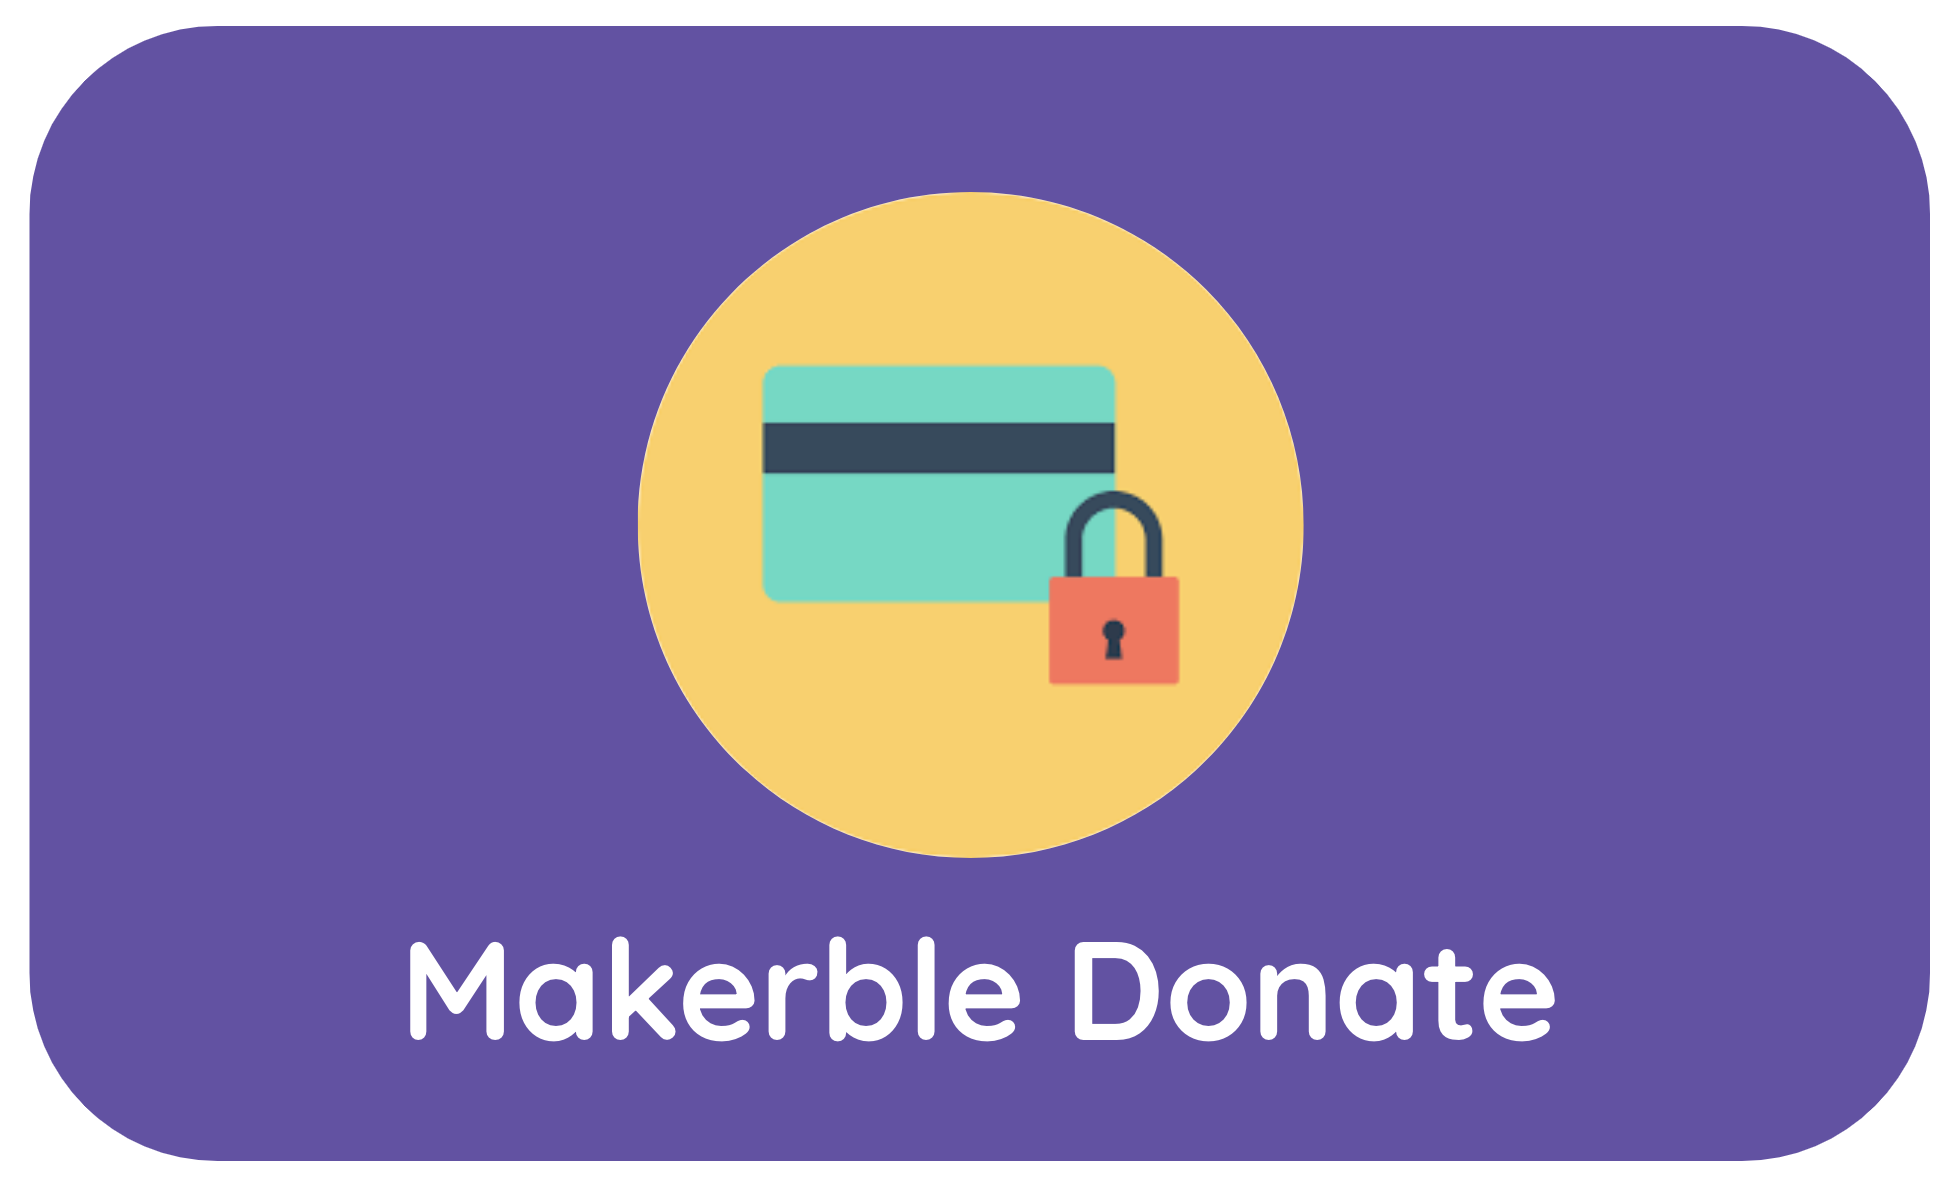 Makerble Donate.png